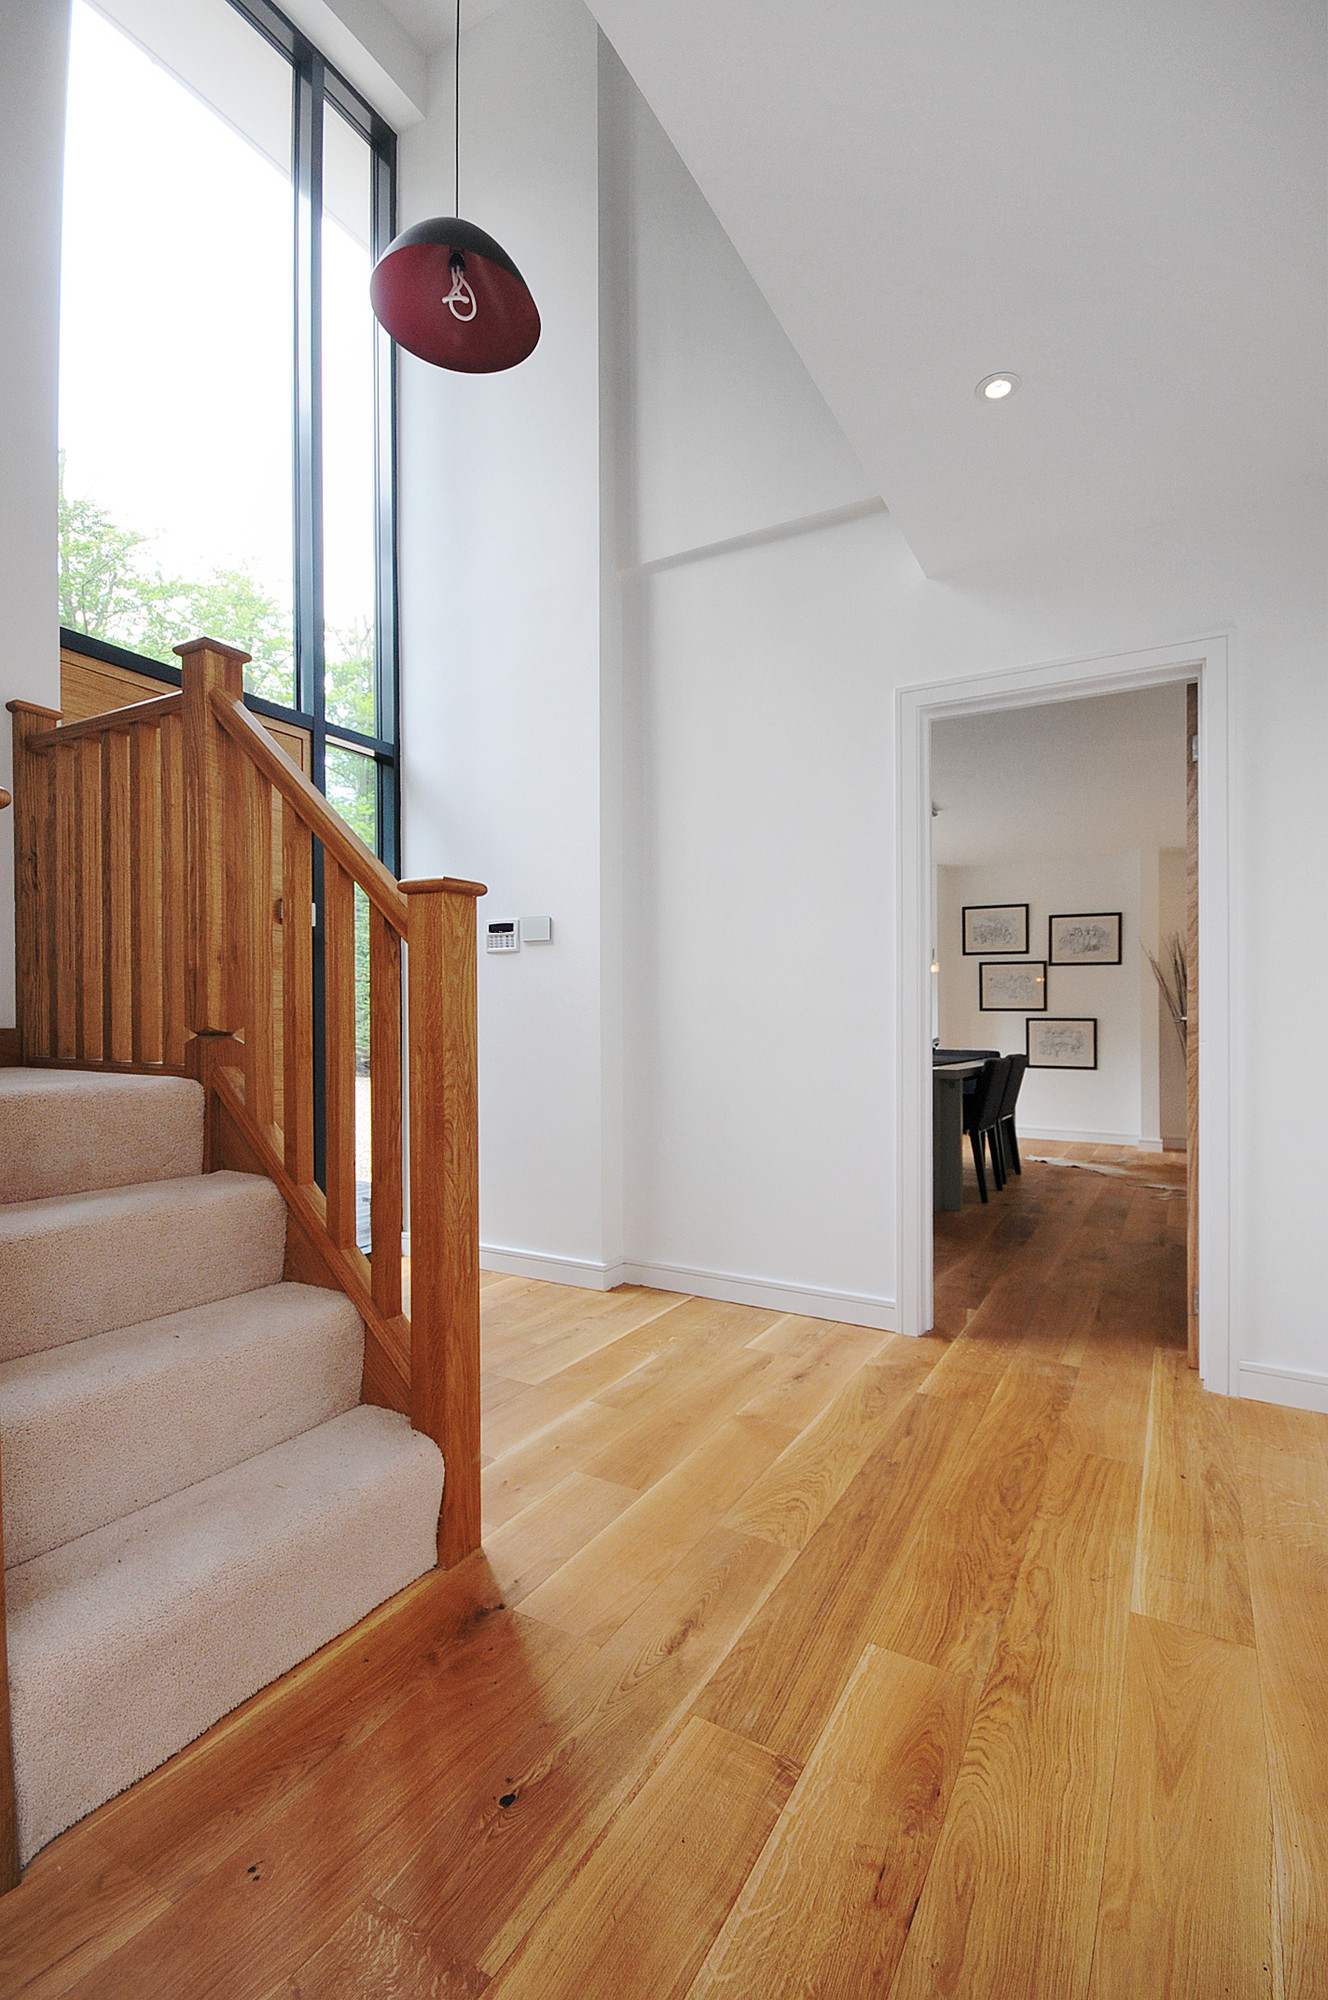 Two Storey Homes Perth: Conversion Of Bungalow To Two Storey House, Hampshire